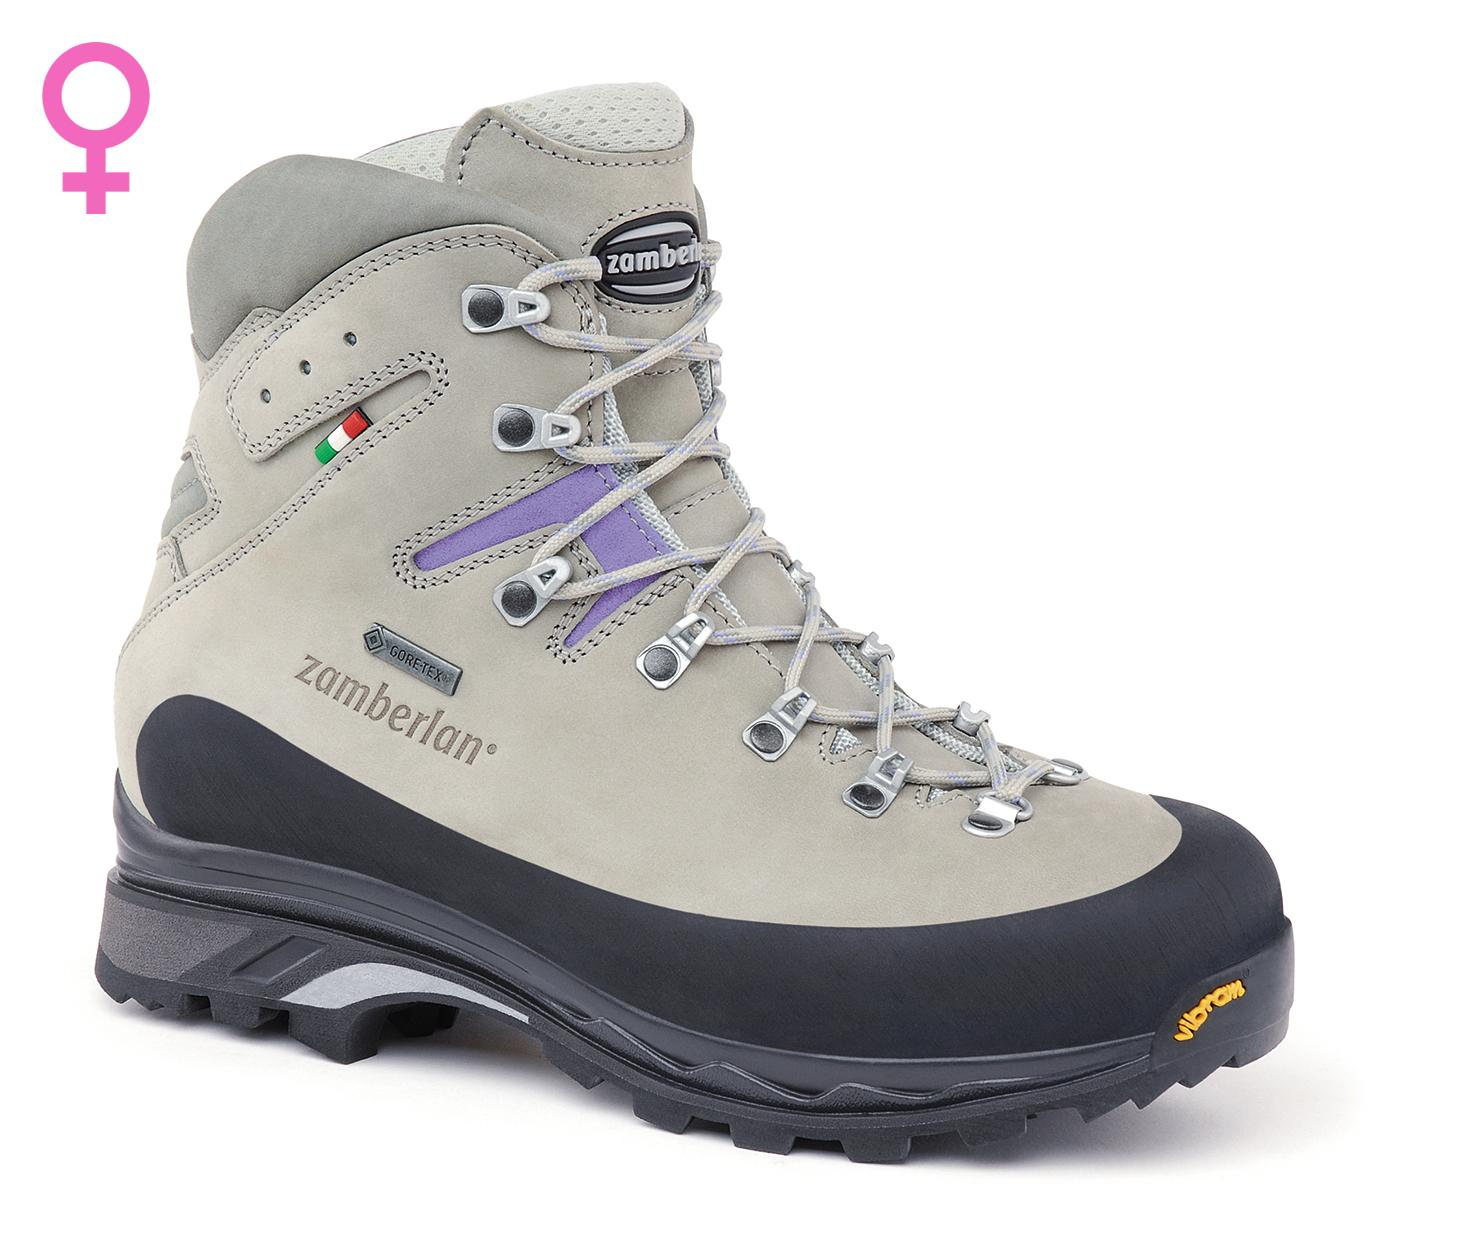 960 GUIDE GTX® RR WNS   -   Scarponi  Trekking   -   Light Grey/Lilac